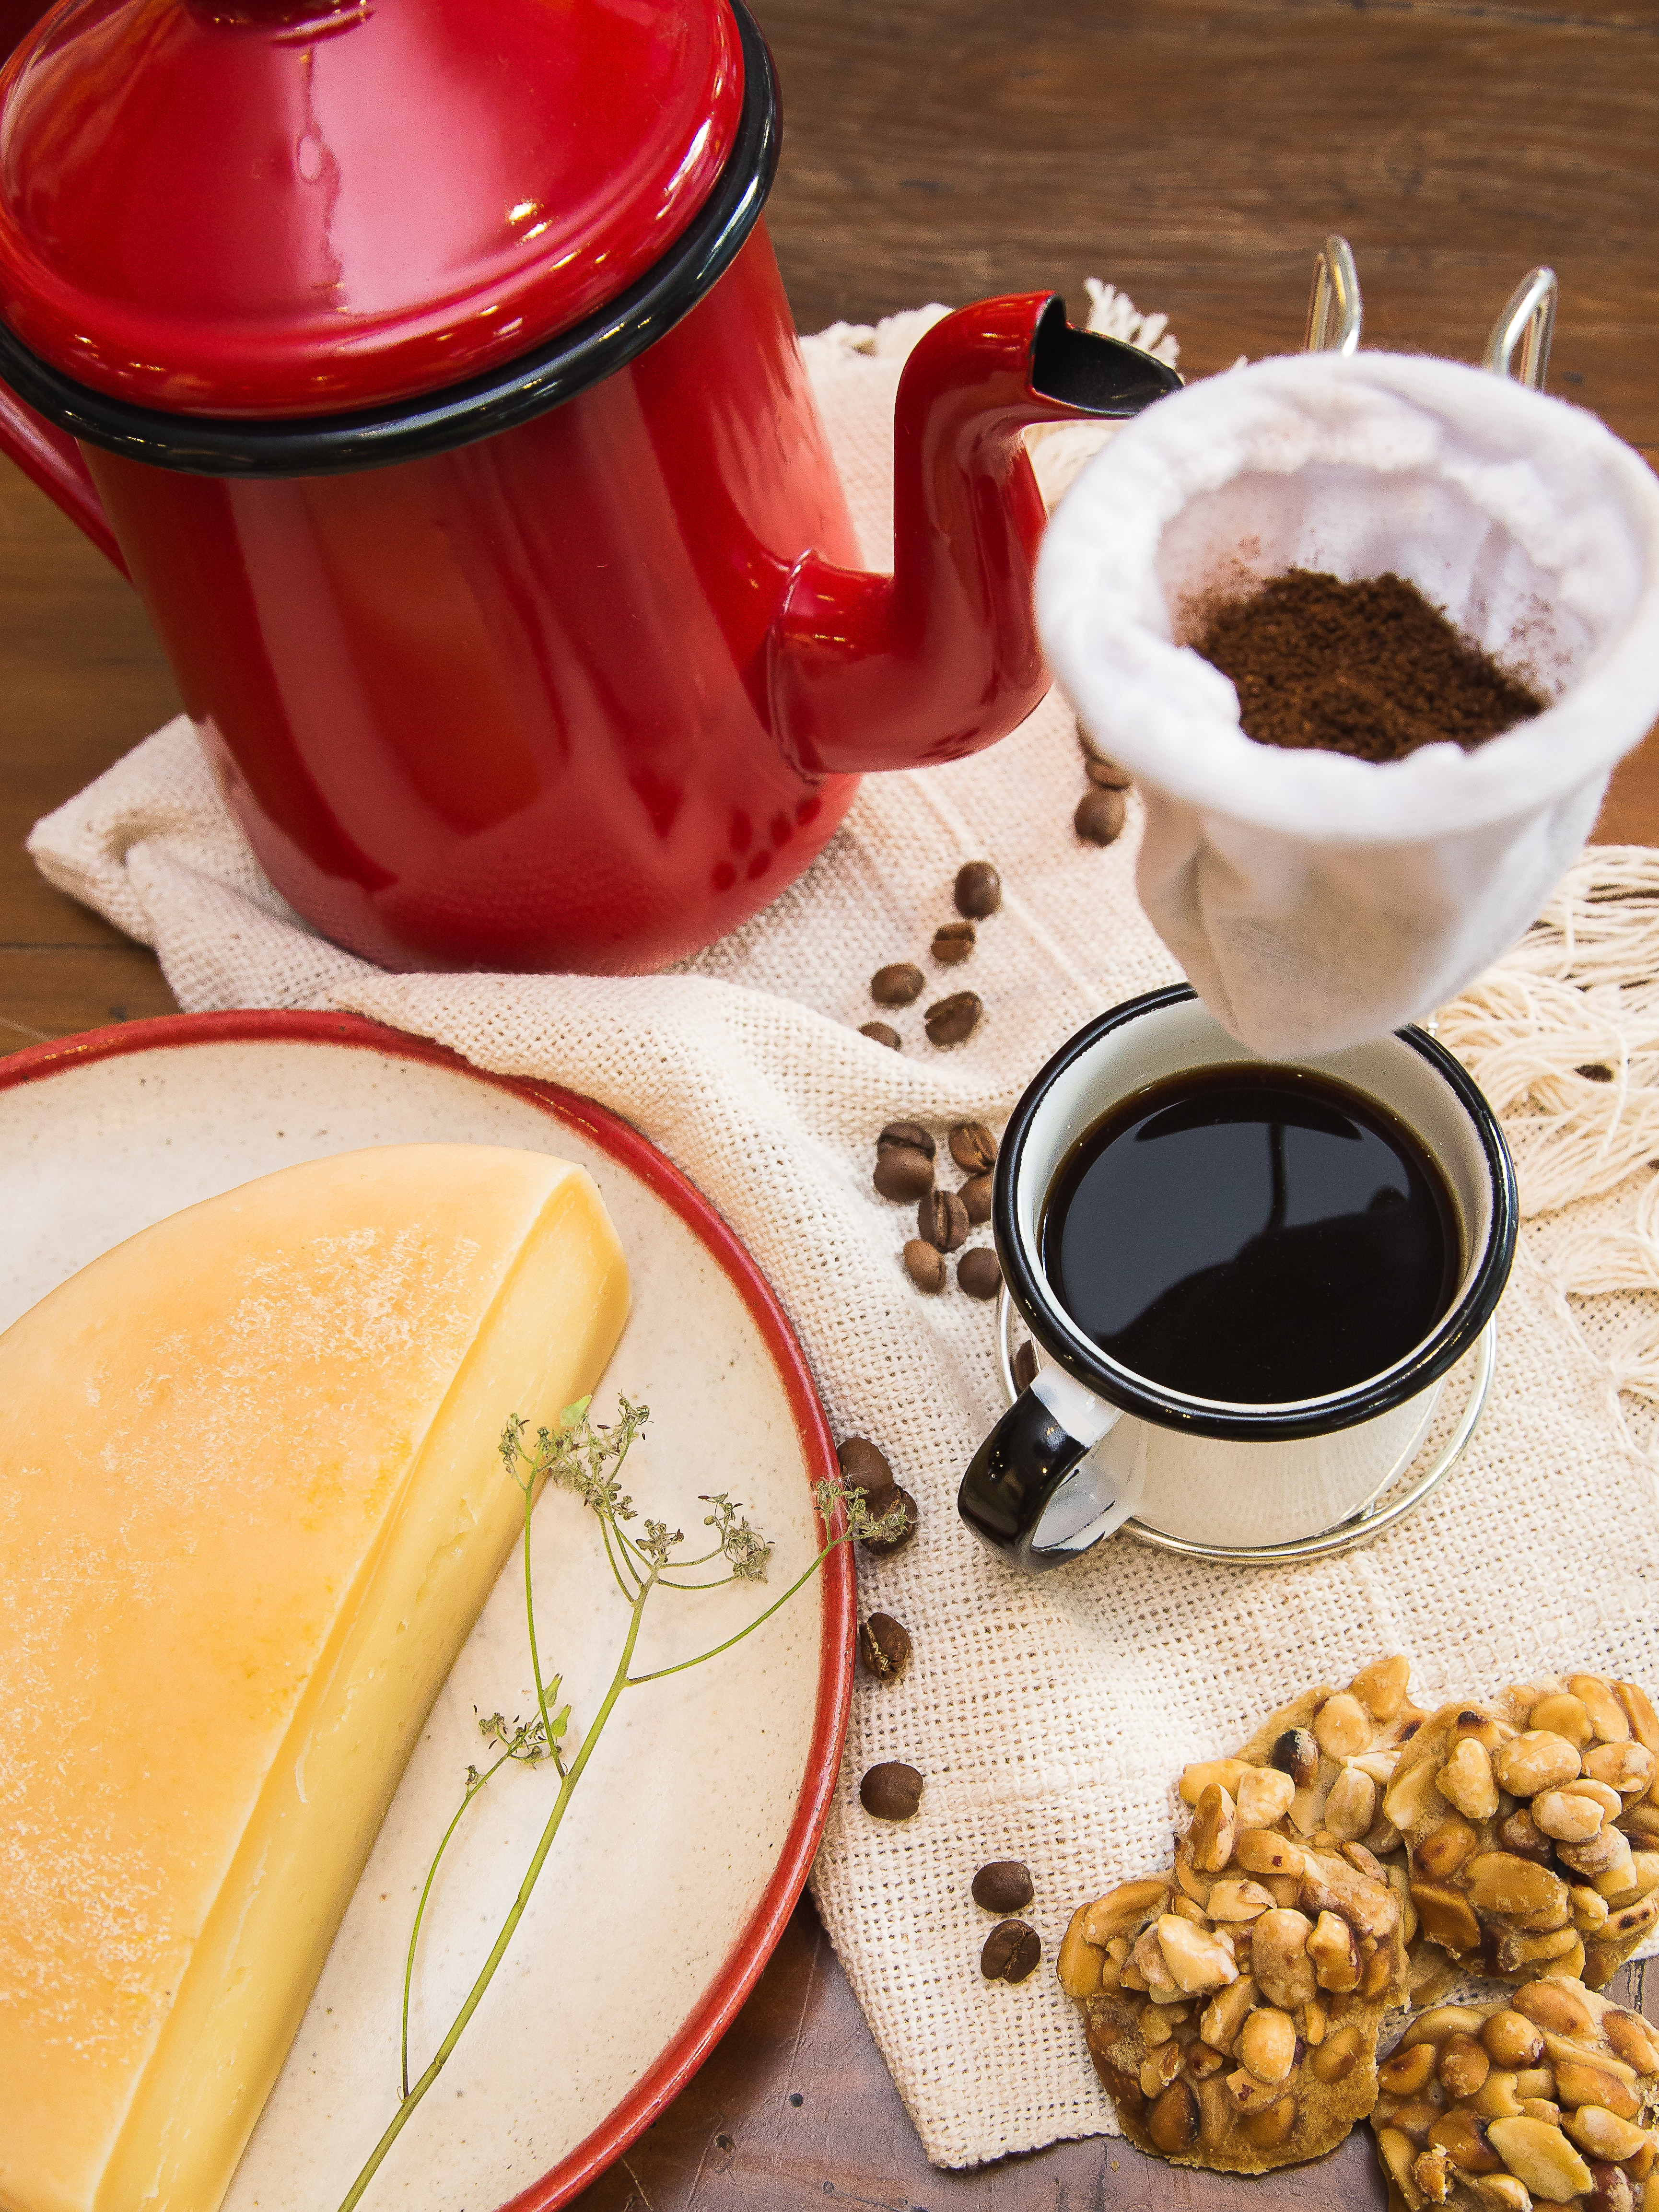 red and black kettle near mug filled with coffee and half a cheese on table